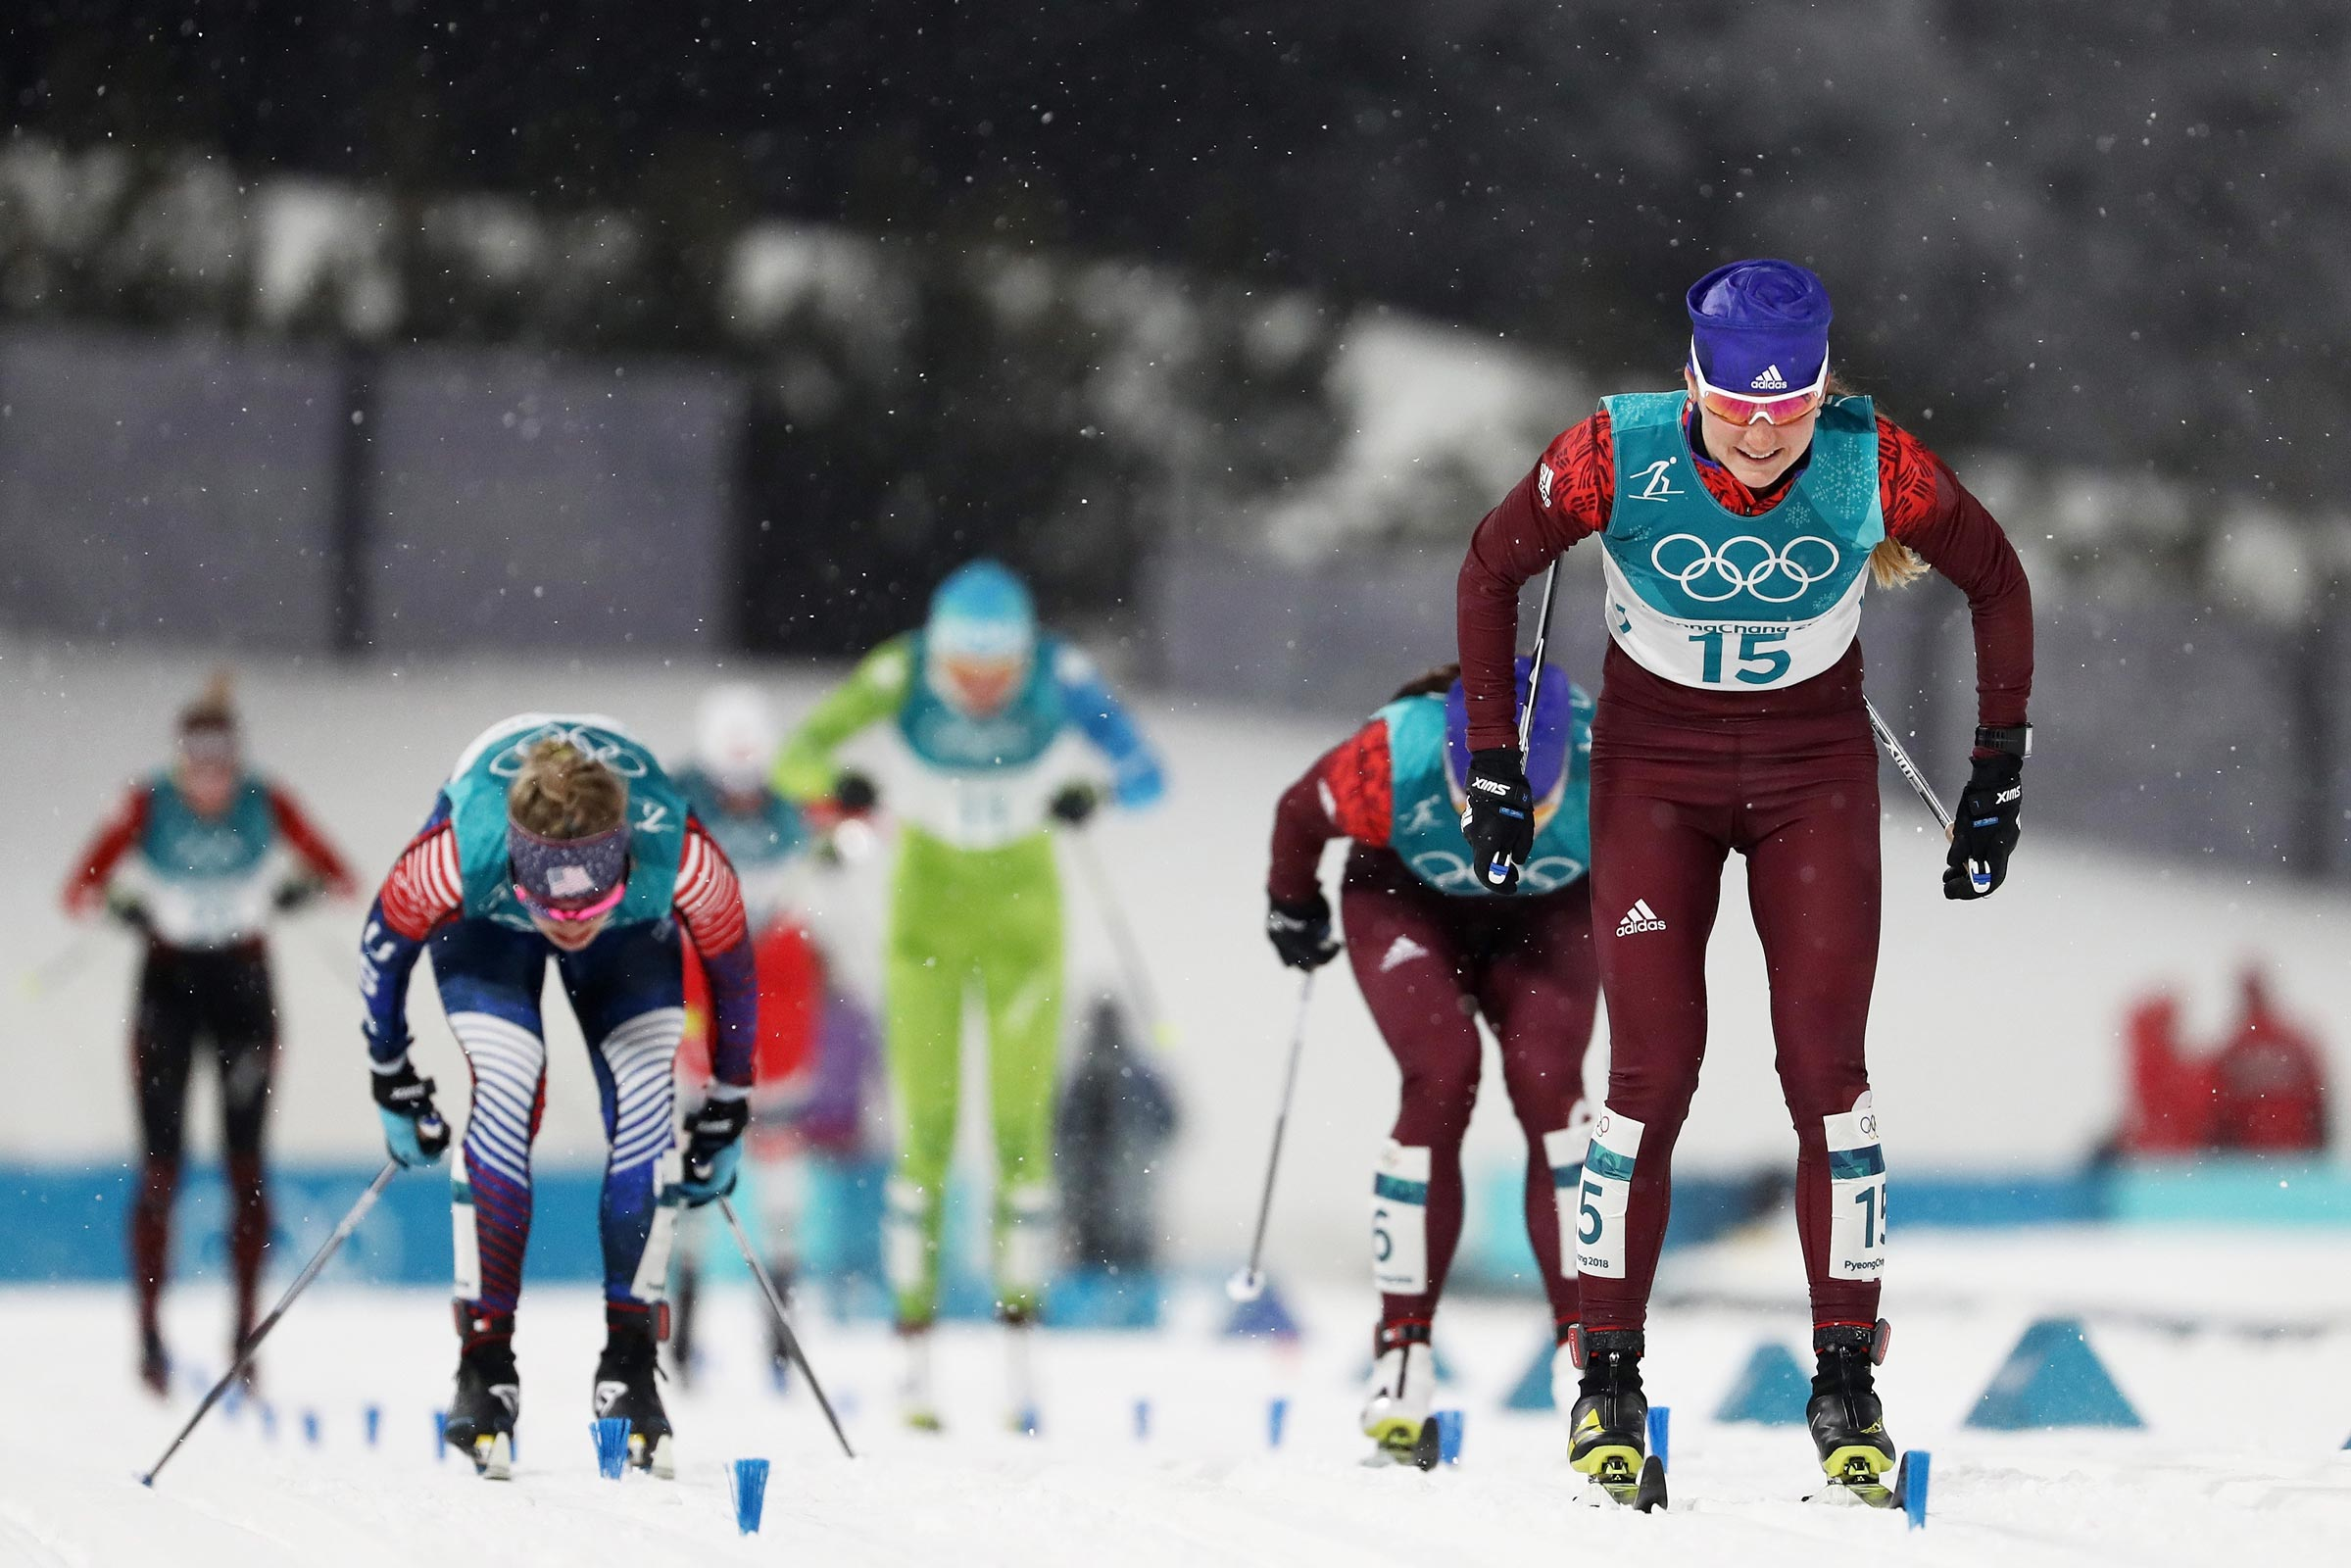 Cross-Country Skiing - Ladies' Sprint Classic